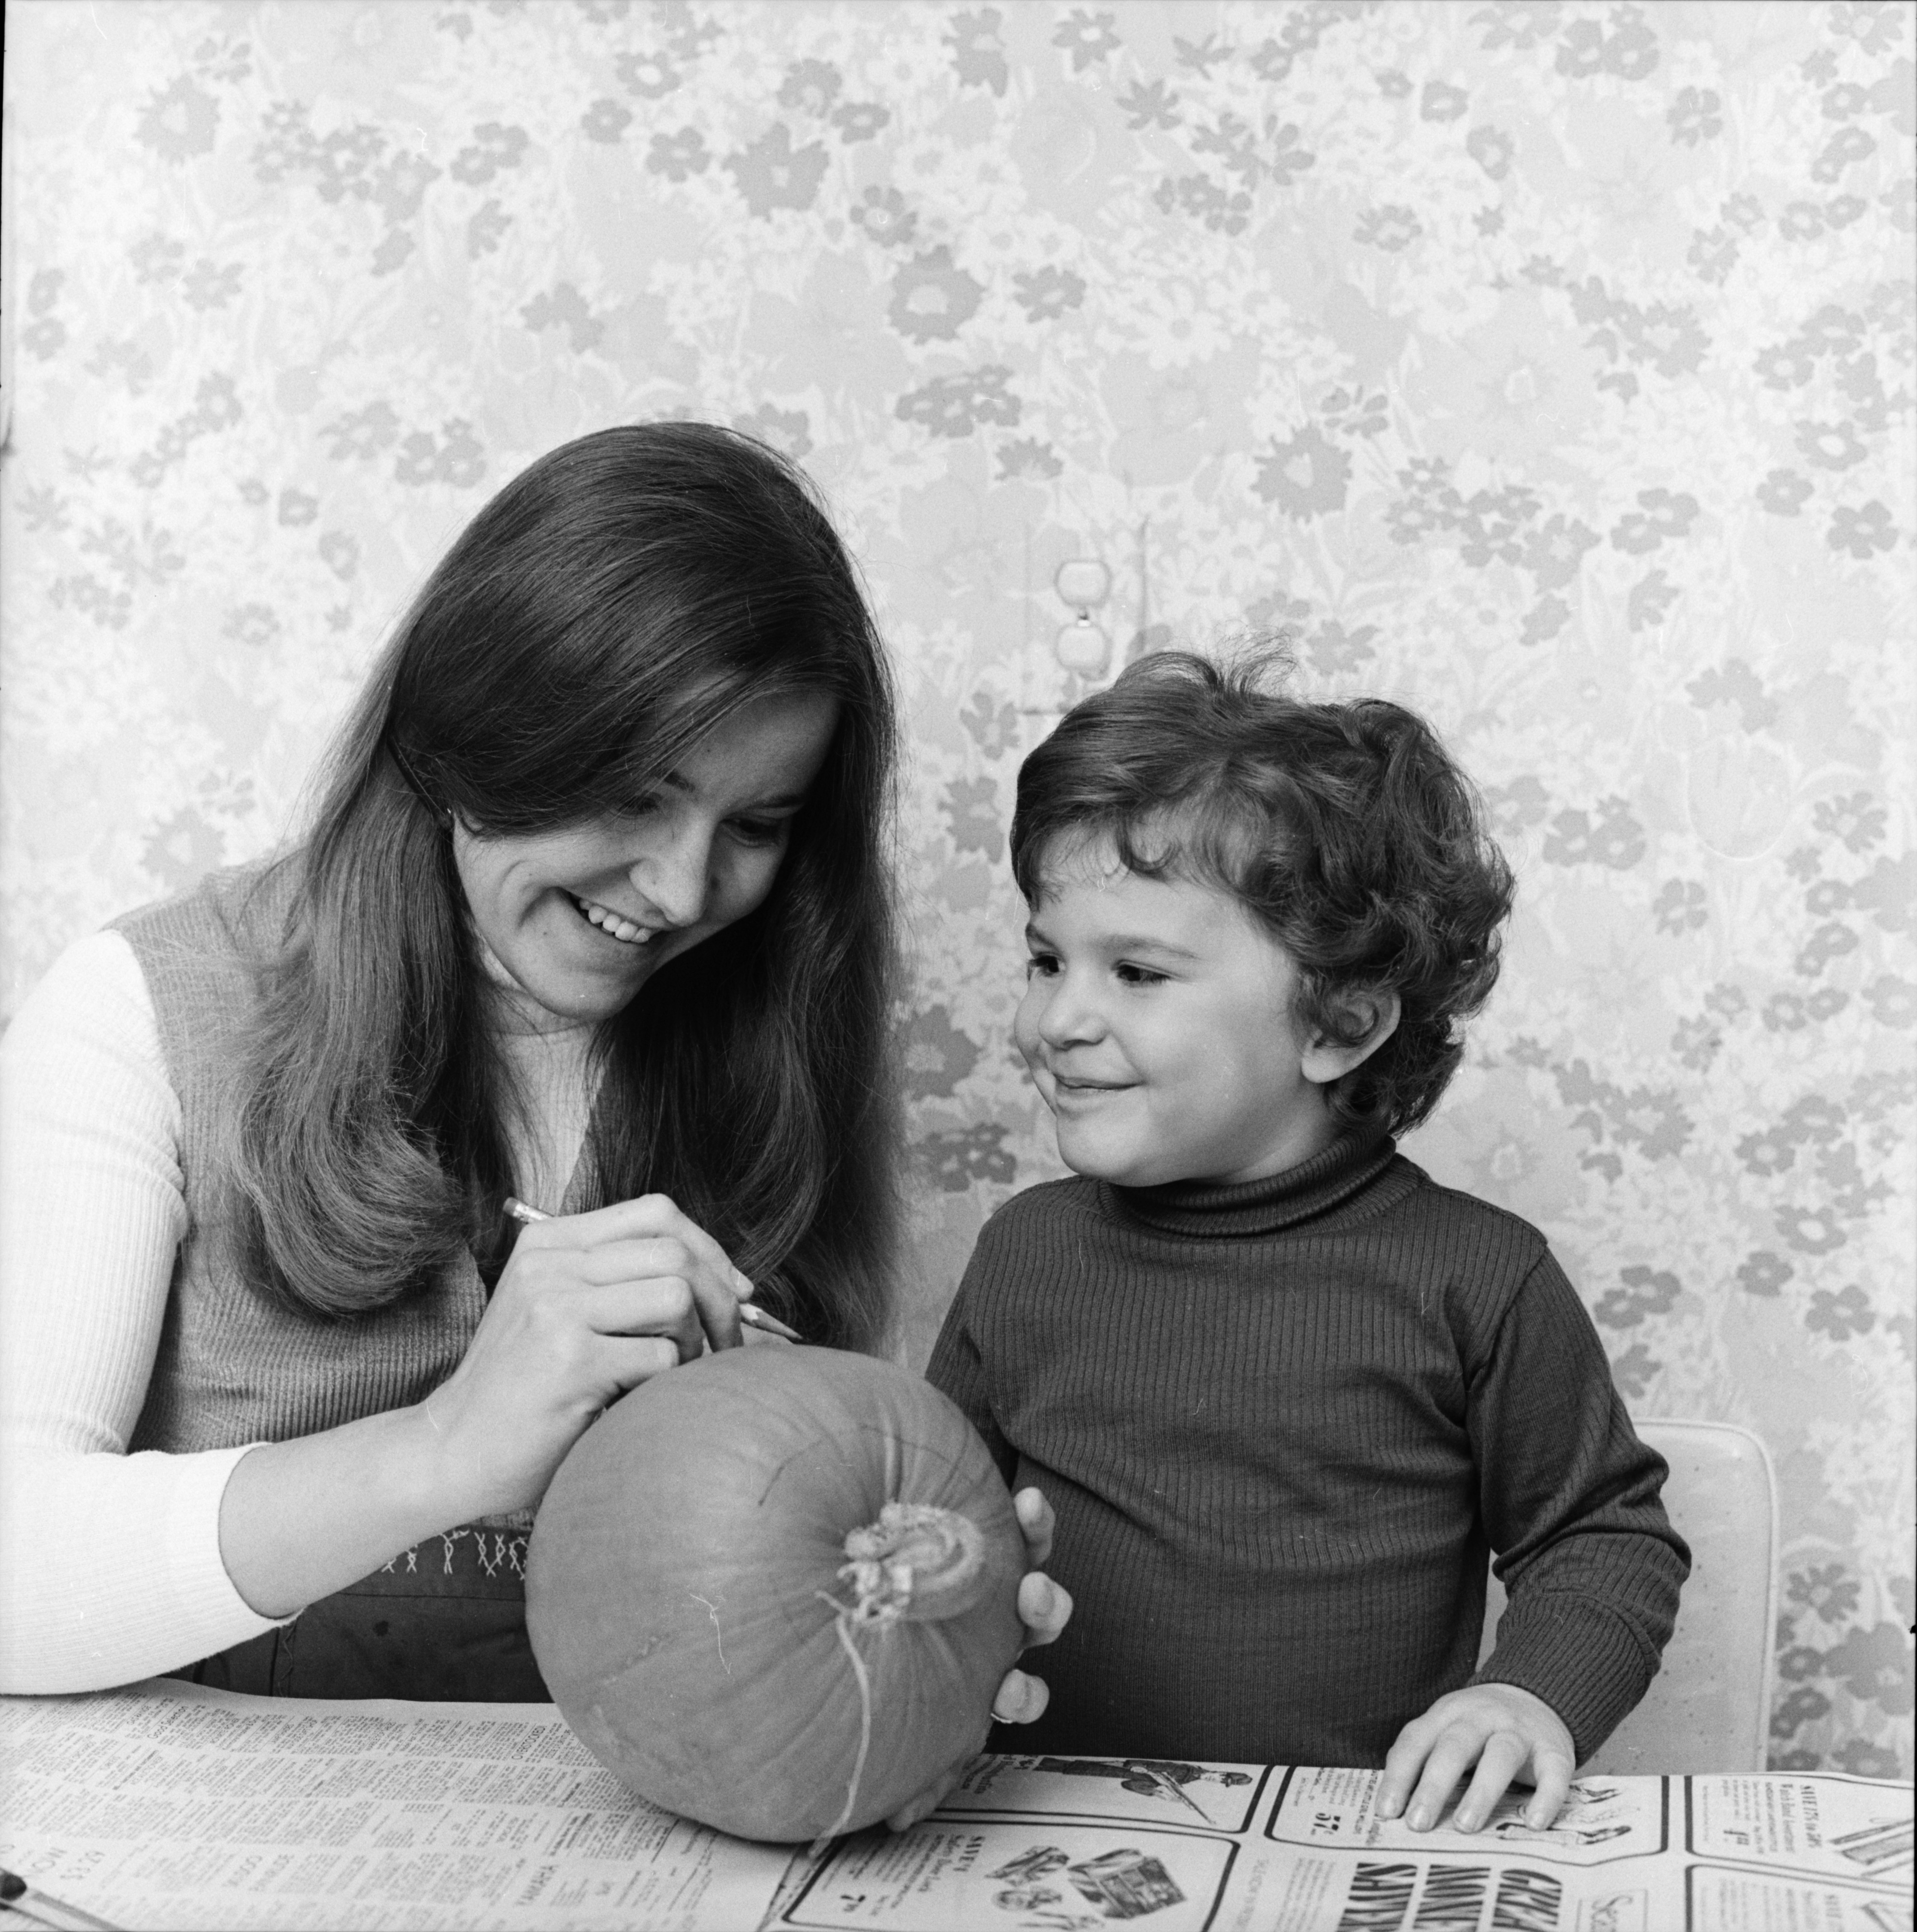 U-M Assistant Professor of Psychology Judy Reitman, with daughter Laurel, November 1973 image